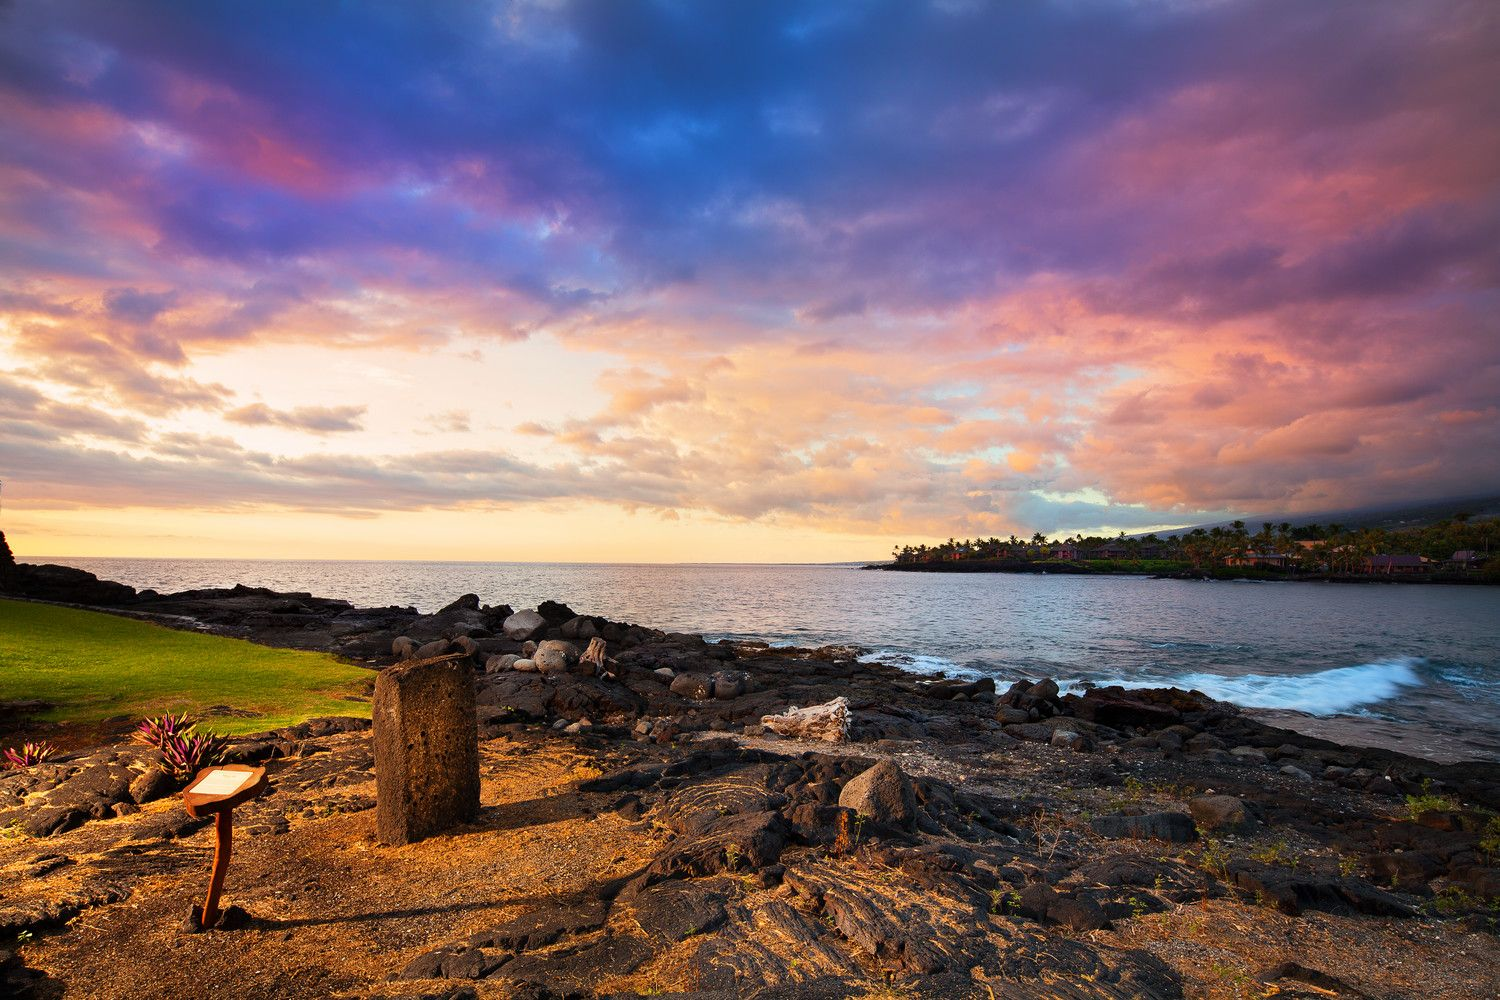 Kona Oceanfront Wedding Resorts - Honeymoon Registry